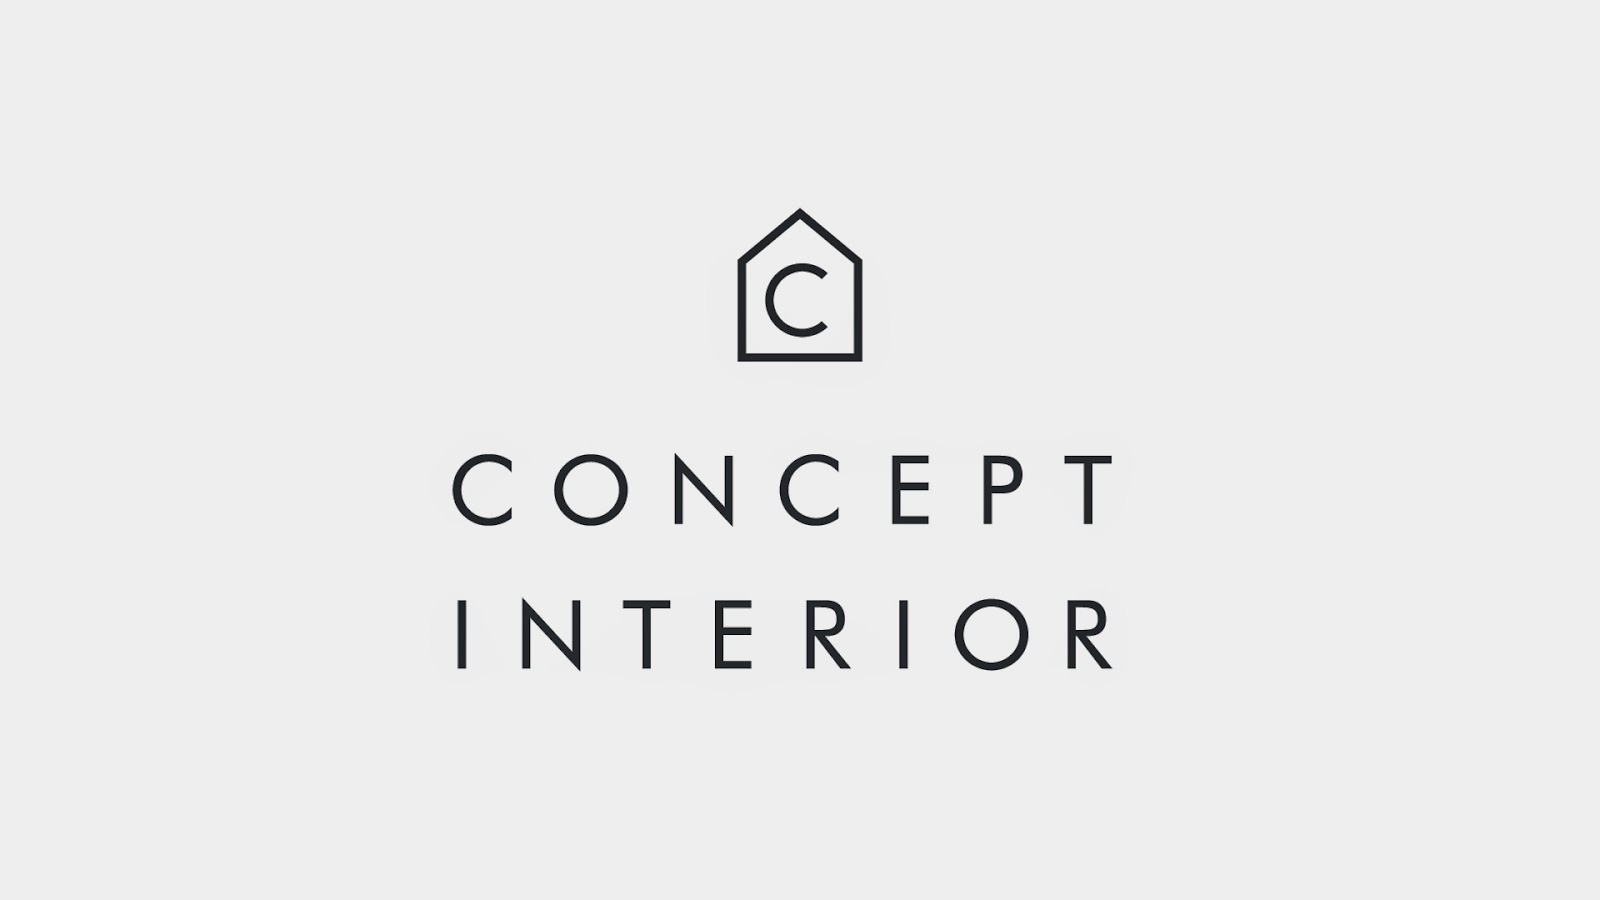 concept interior logo design 1 - Interior Design Logo Ideas